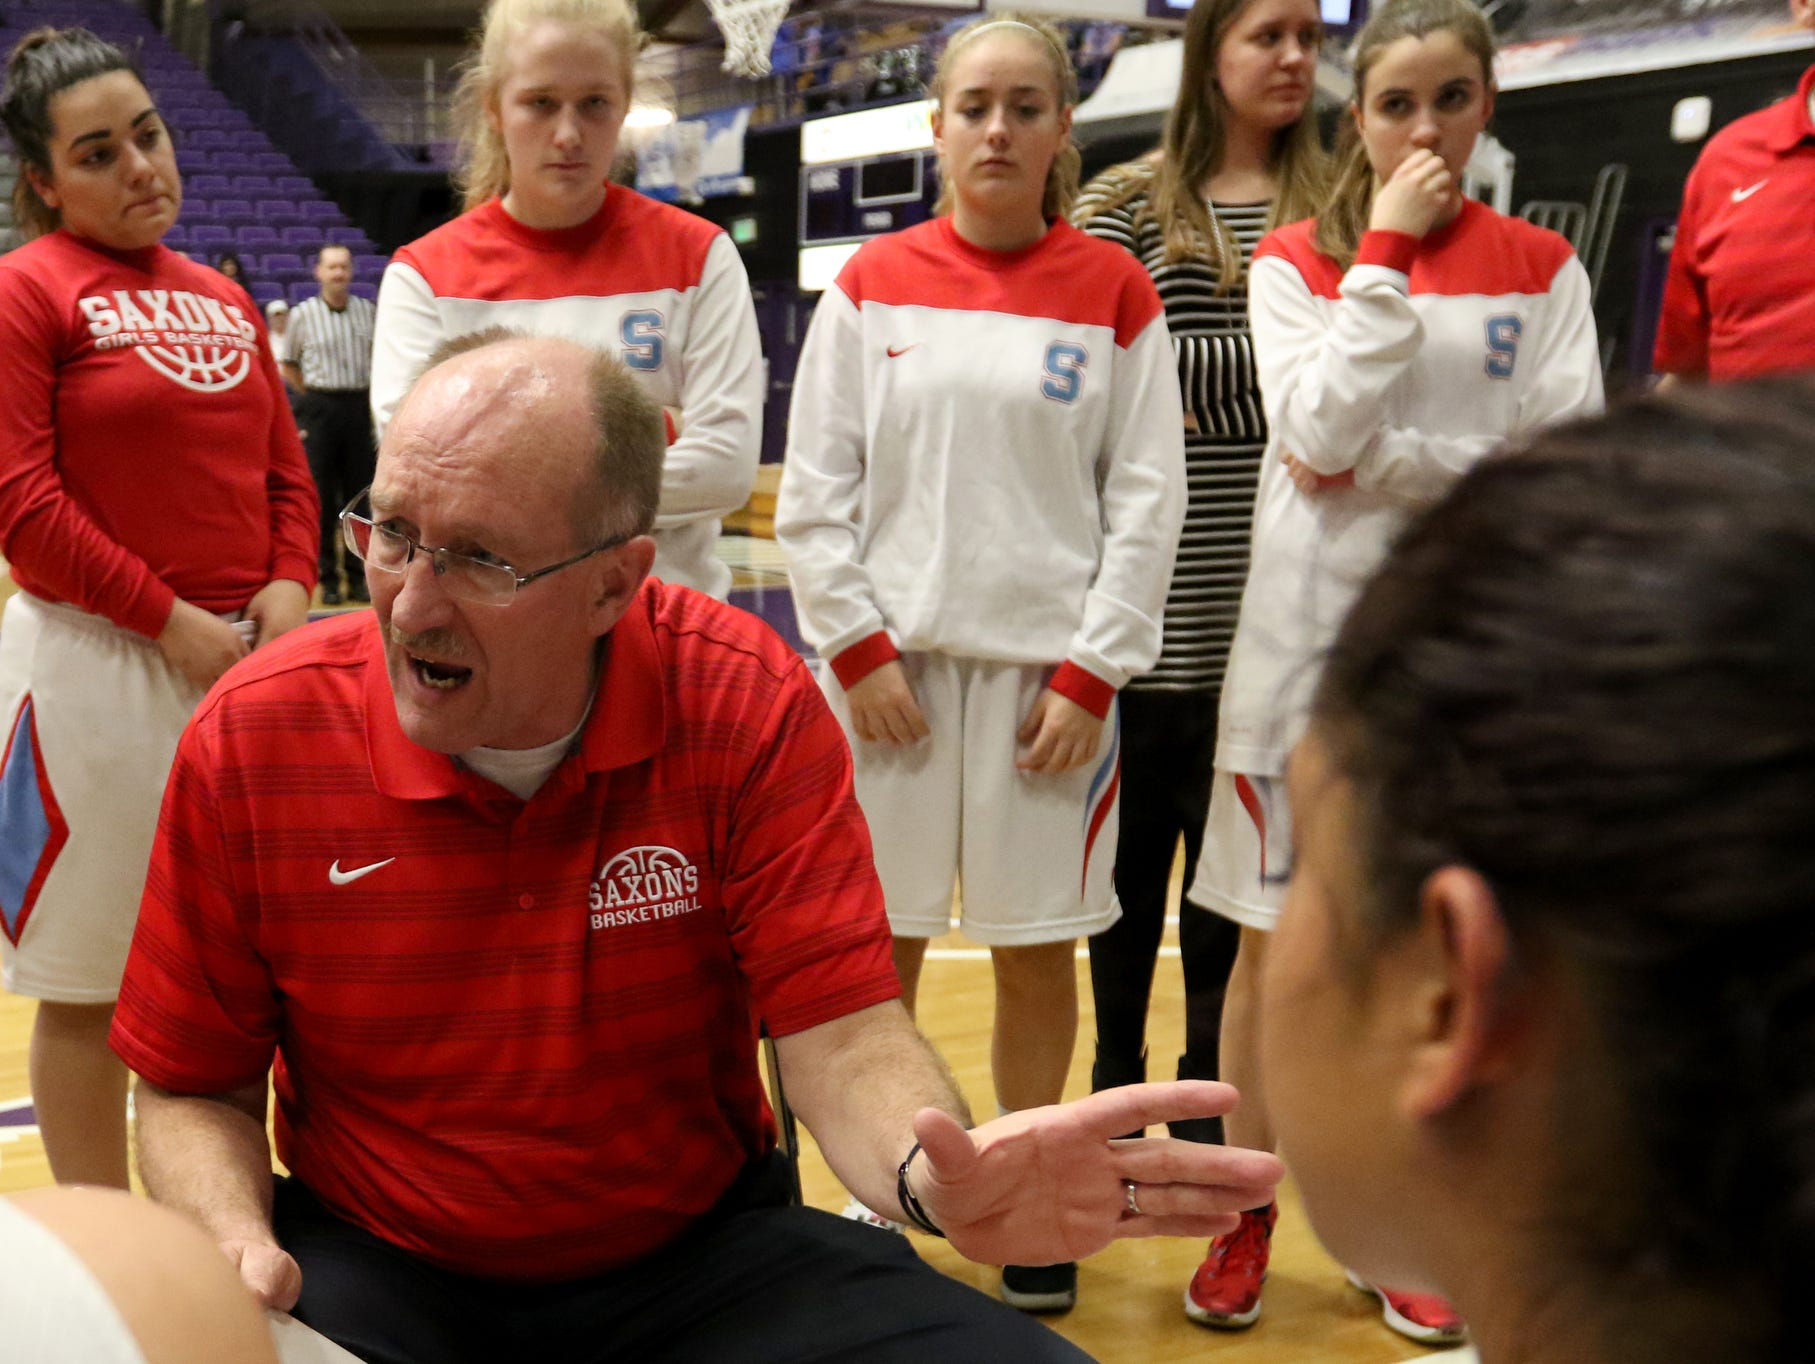 South Salem head coach Nick McWilliams talks with his team during a break in the second half of the Grant vs. South Salem girl's basketball game to determine third place in the OSAA Class 6A State Championships at the University of Portland on Saturday, March 11, 2017. South Salem won the game 58-53.